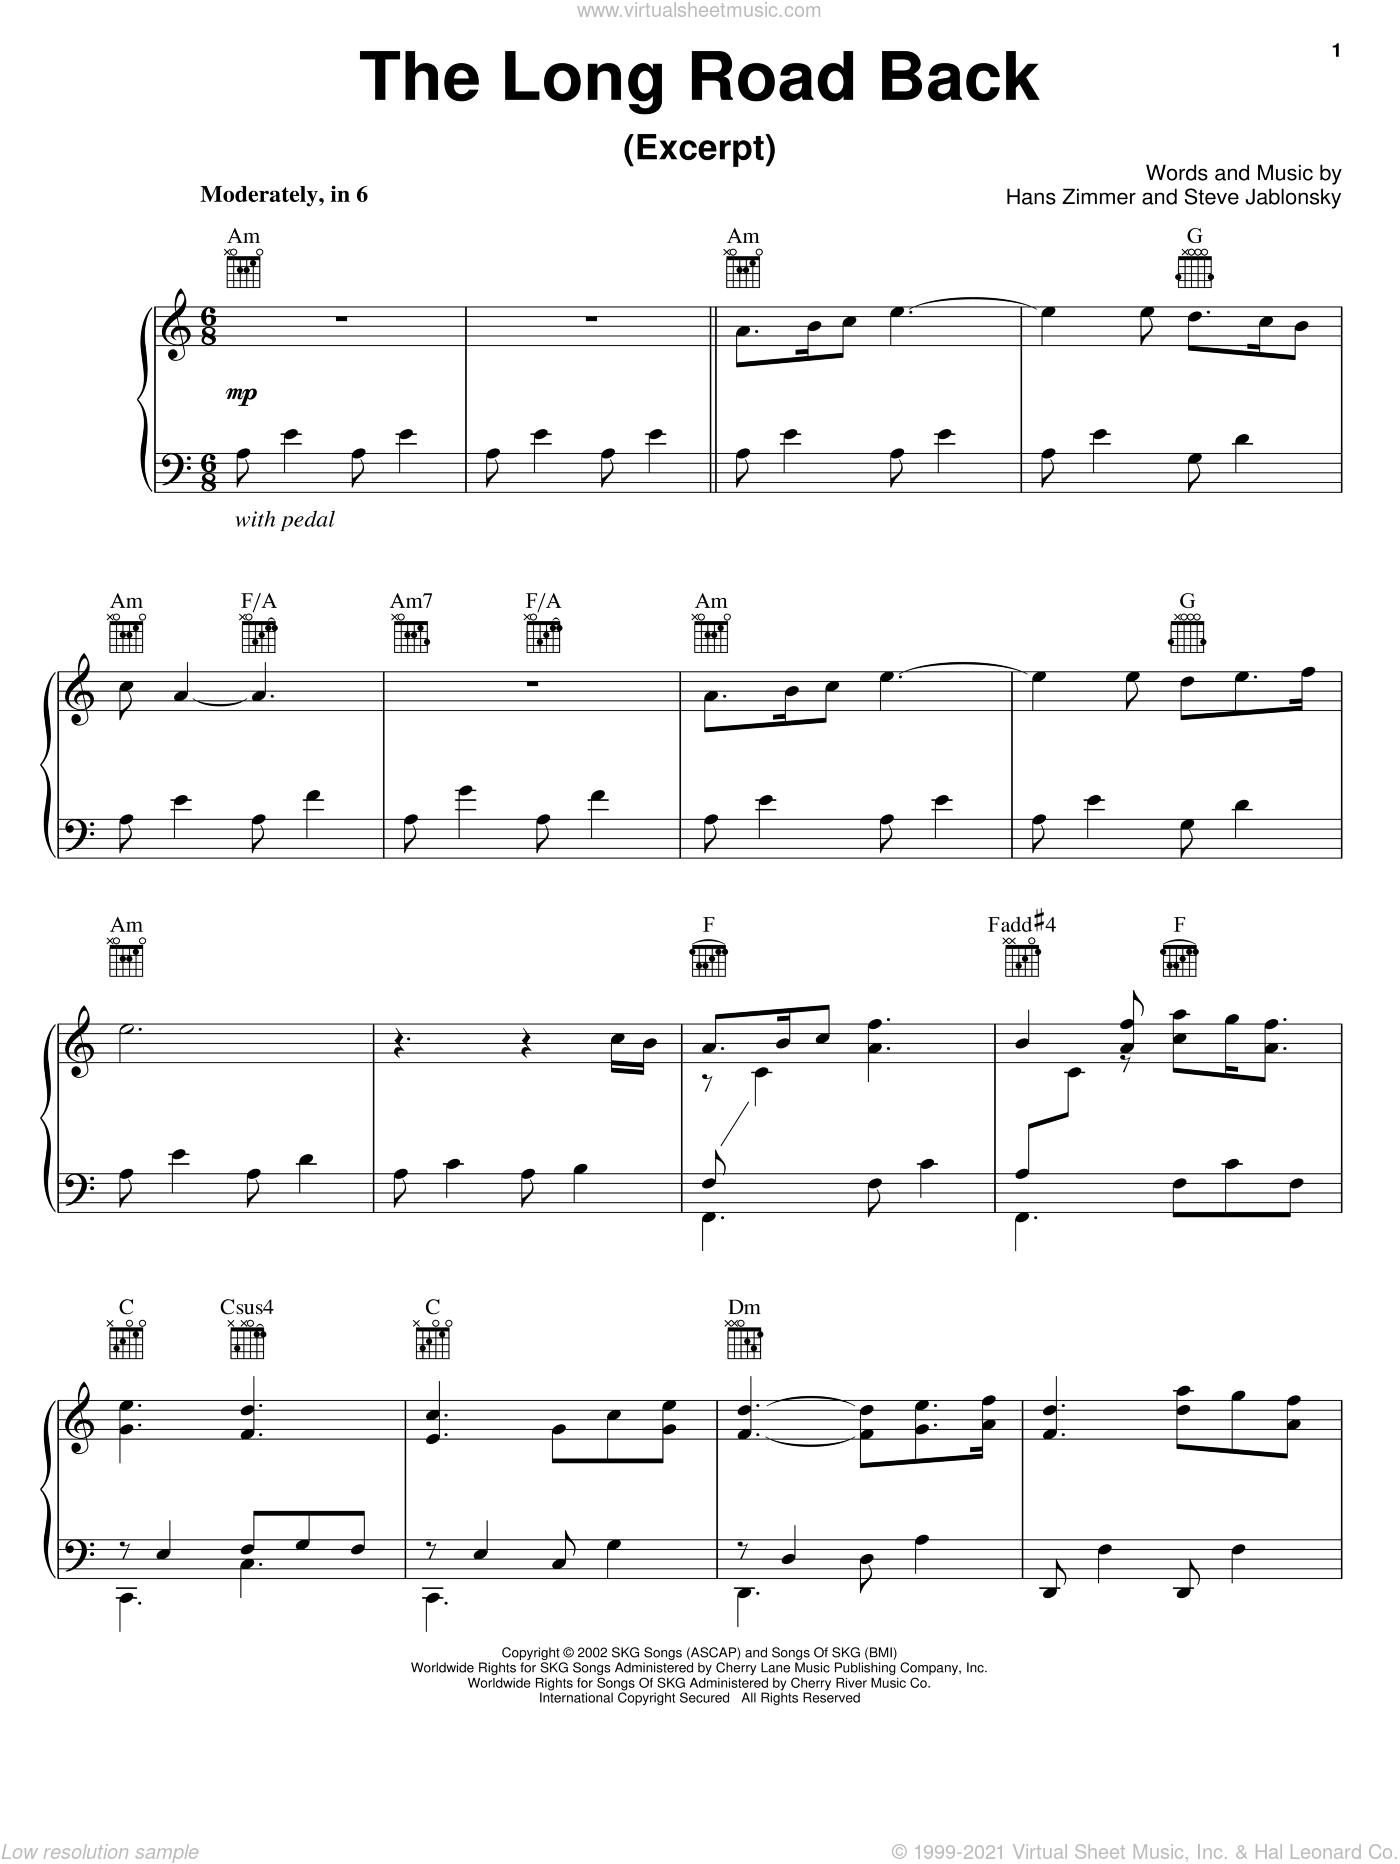 The Long Road Back sheet music for voice, piano or guitar by Hans Zimmer, Spirit: Stallion Of The Cimarron (Movie) and Steve Jablonsky, intermediate skill level